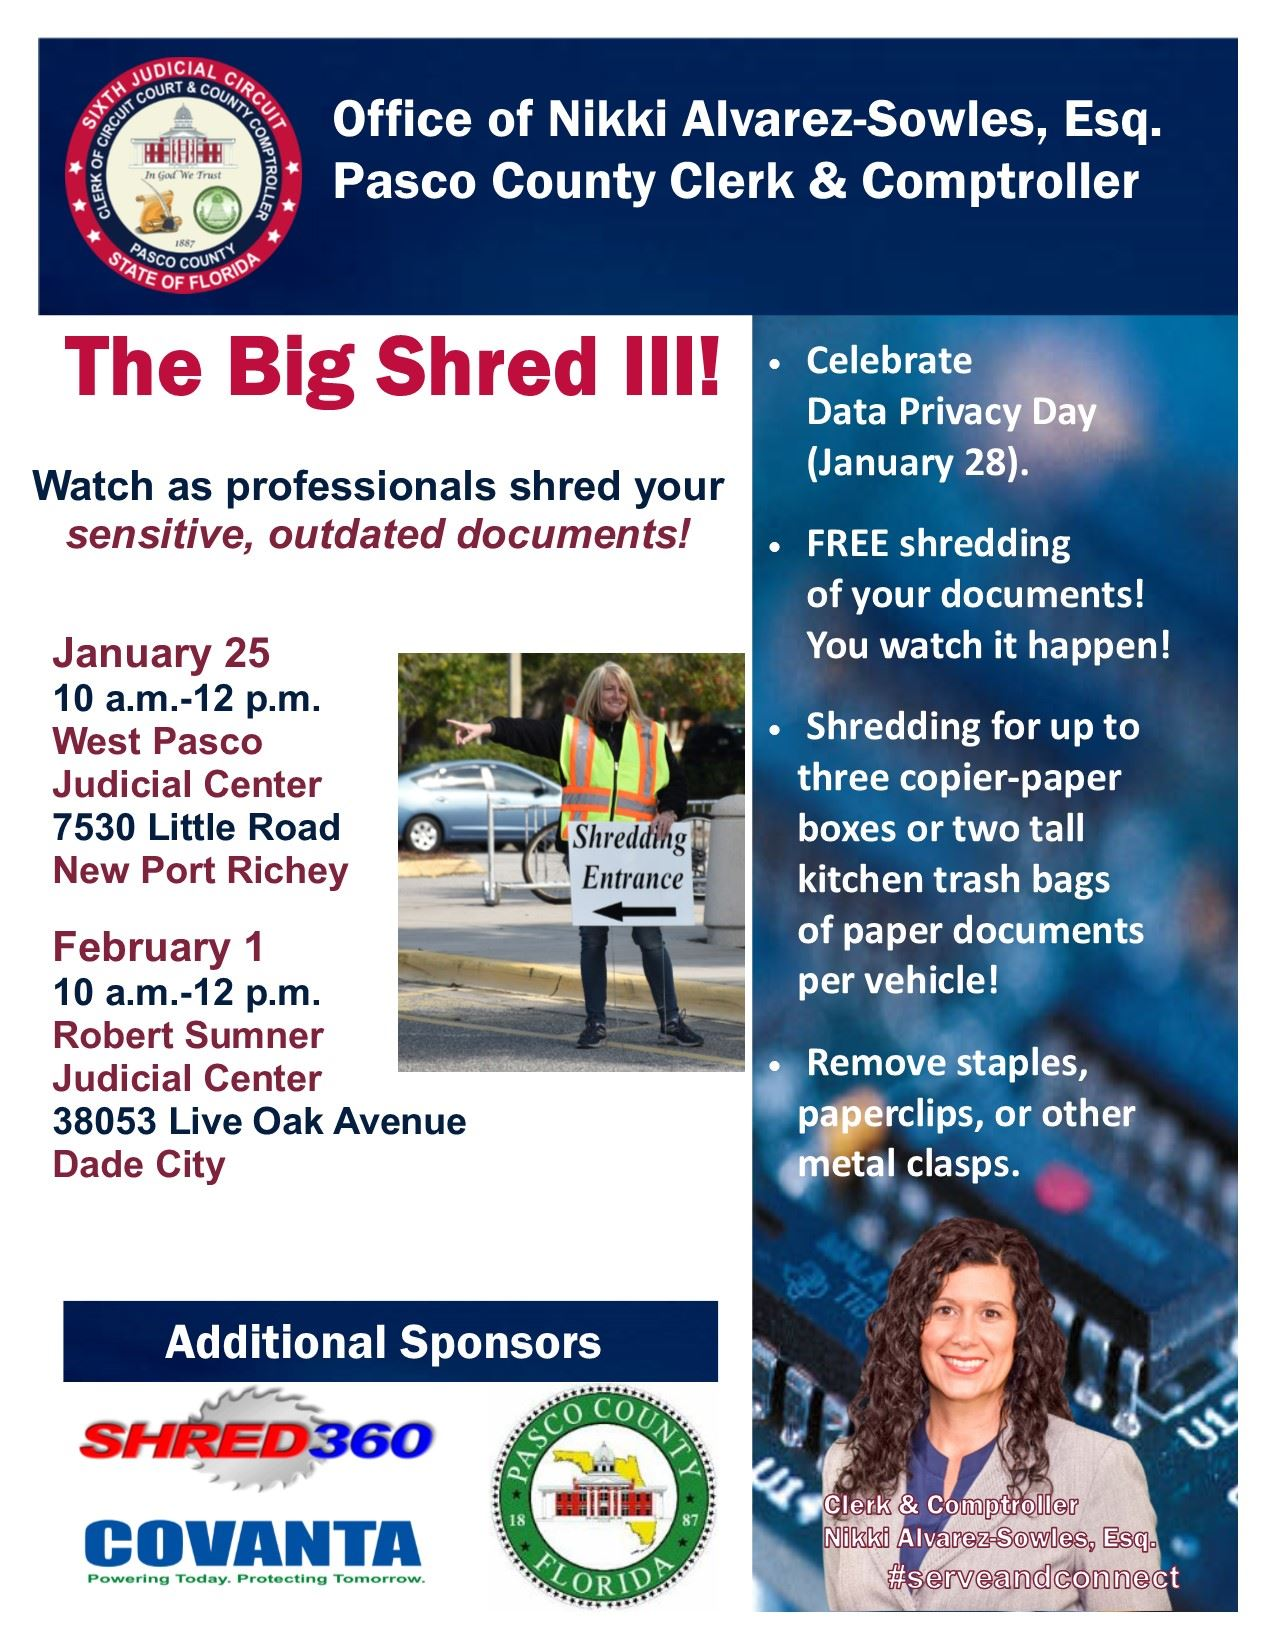 The Big Shred III flyer showing times, locations, and instructions for the Pasco Clerk & Comptroller